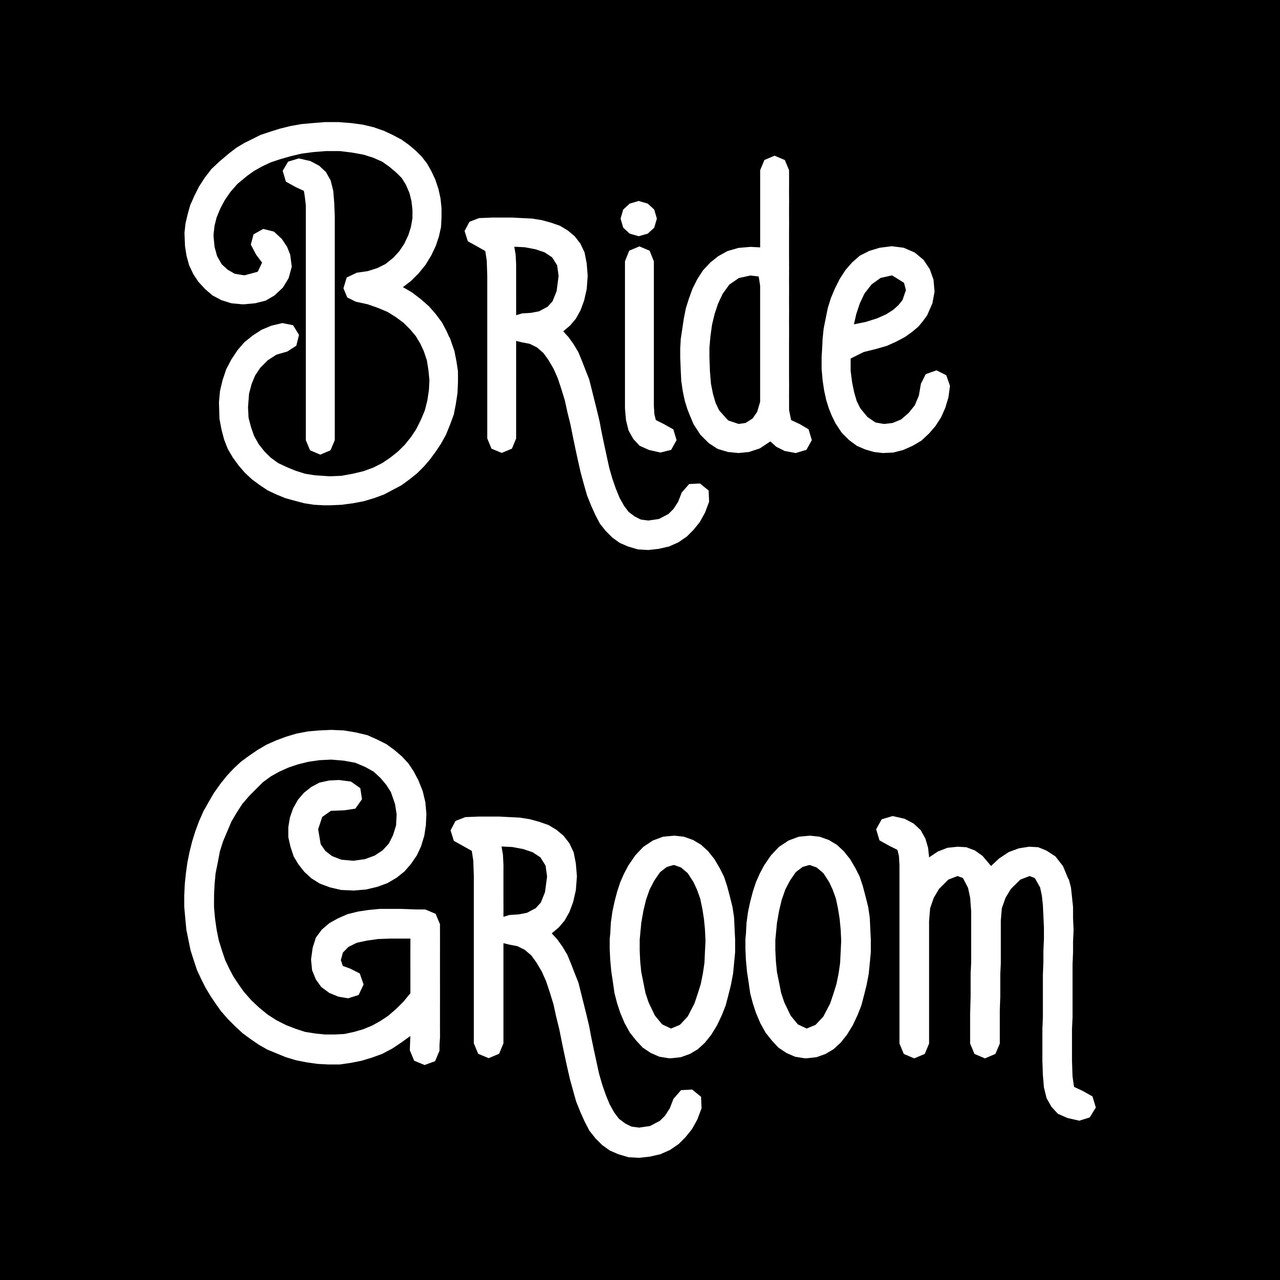 """BRIDE and GROOM 7.5"""" Vinyl Decal Stickers - V2 - Wedding"""